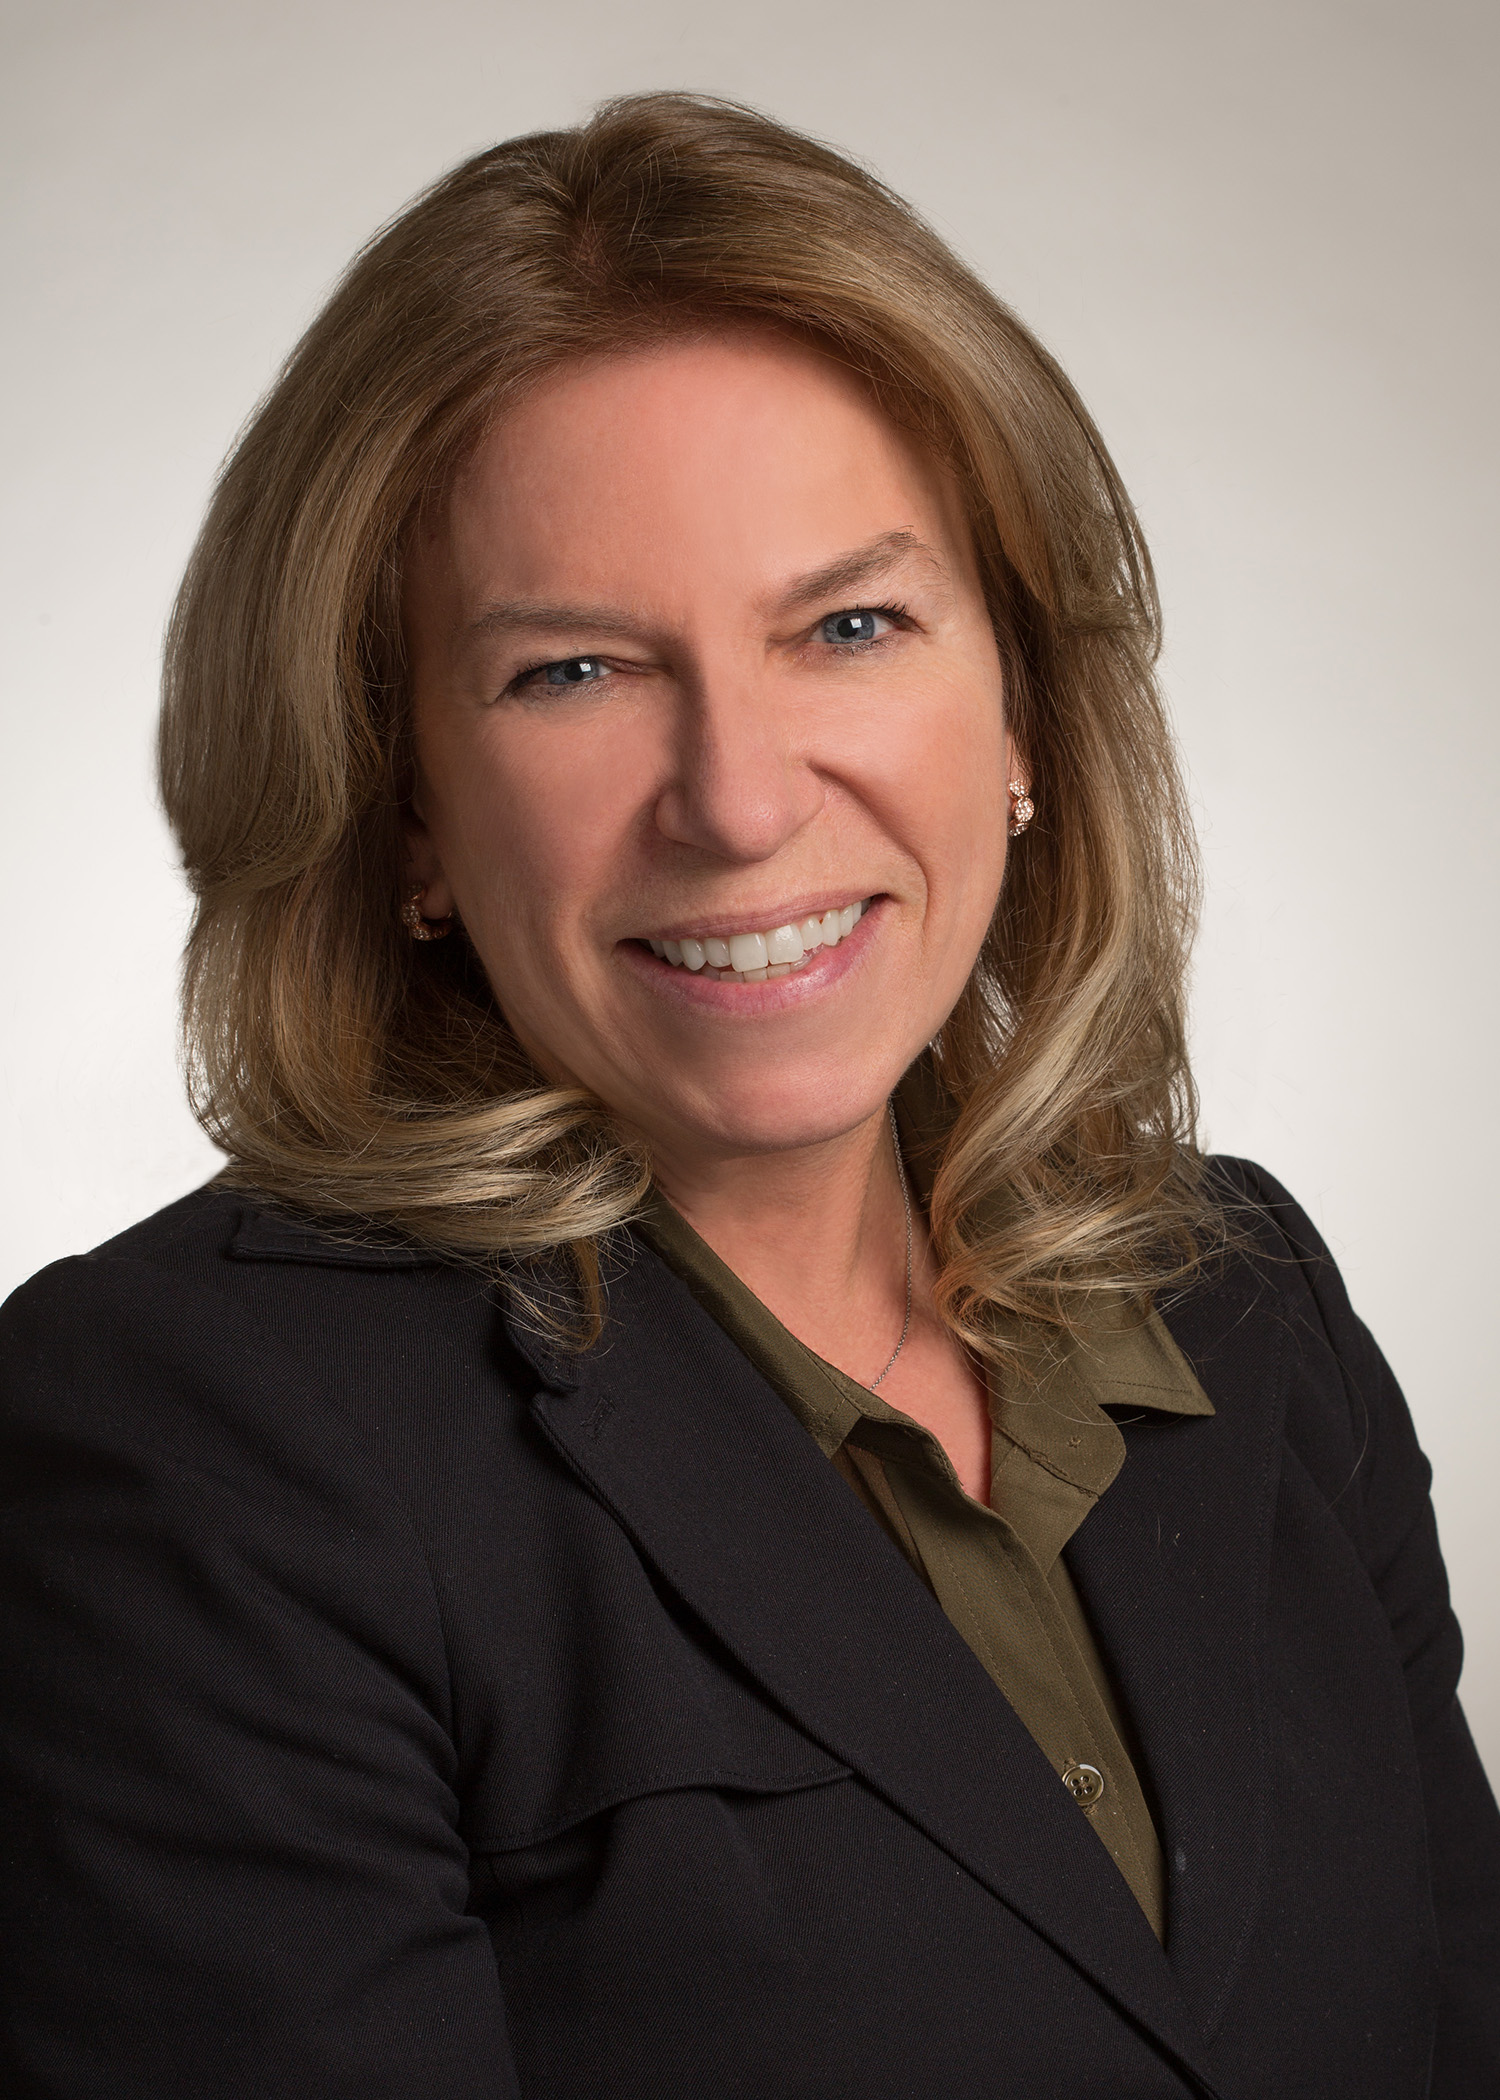 Kathy Shelton, Vice President and Chief Technology Officer, FMC Corporation